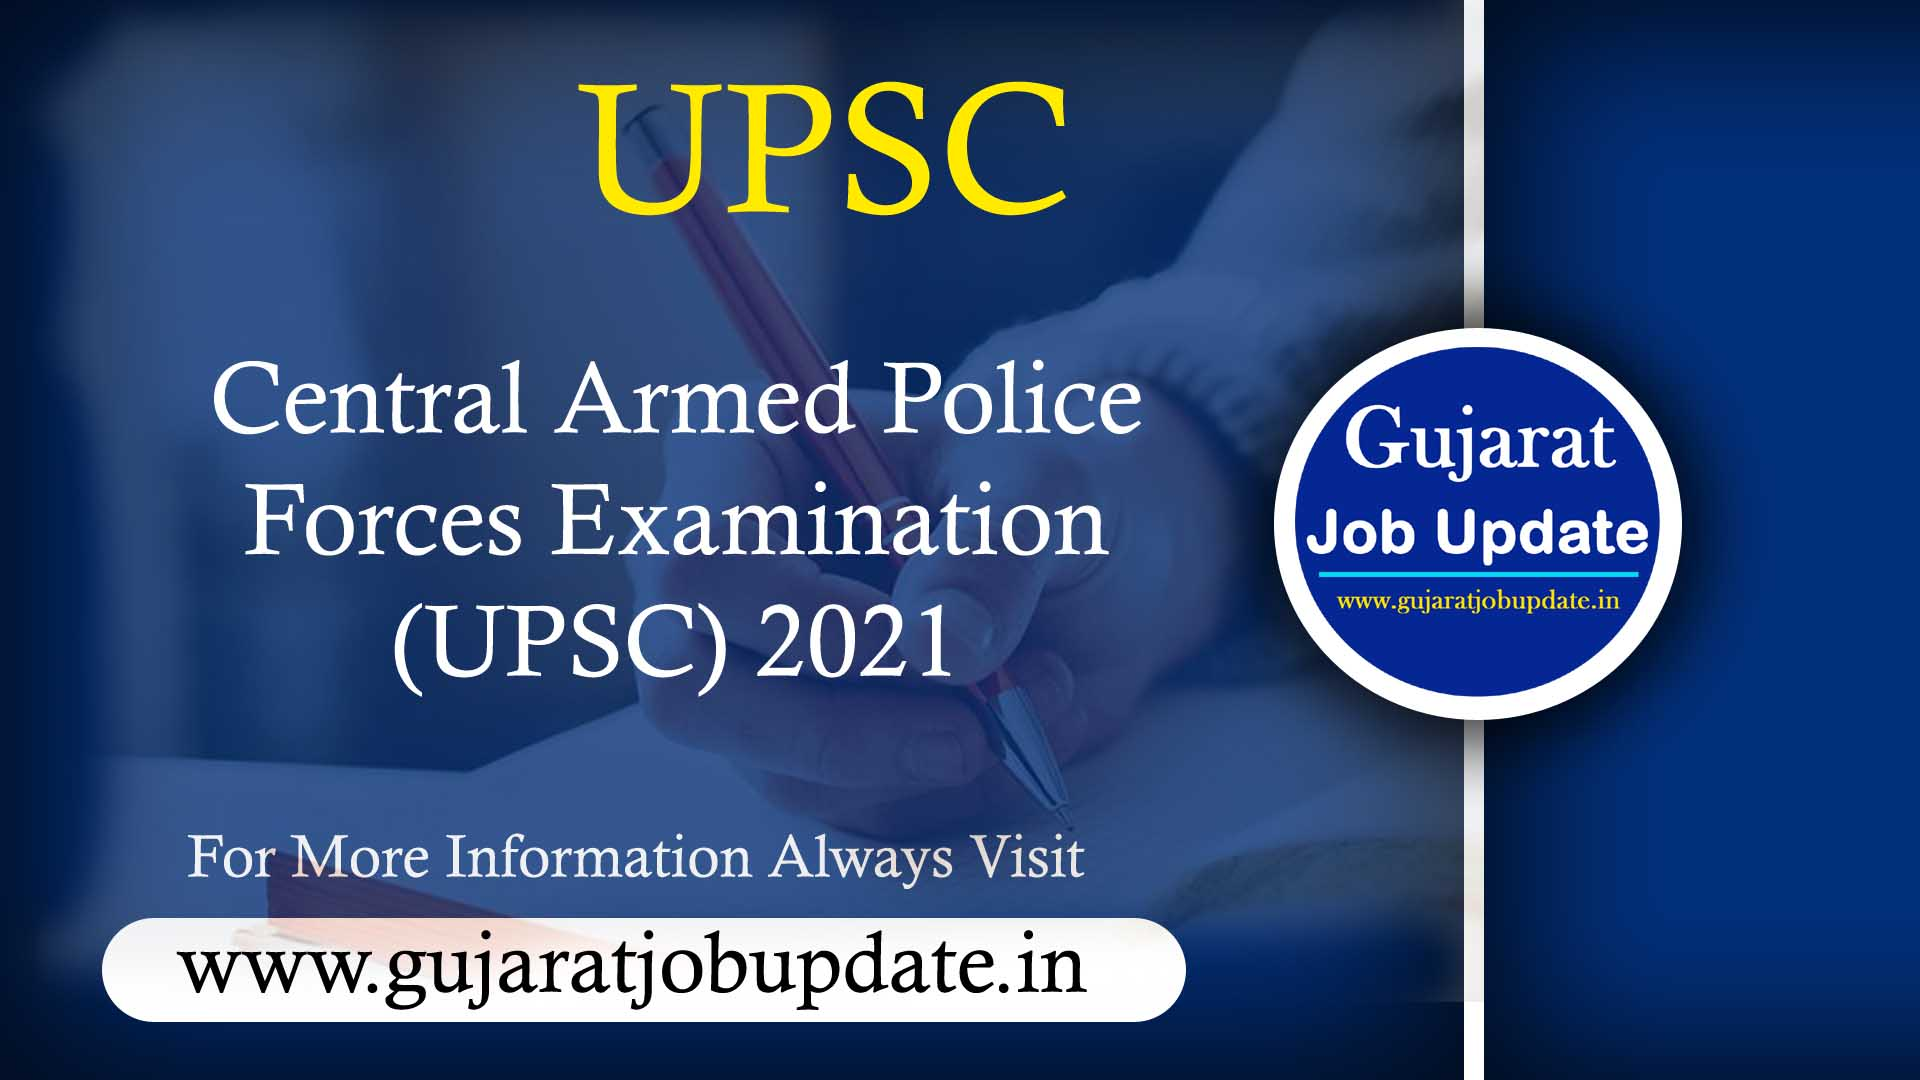 Central Armed Police Forces Examination (UPSC) 2021